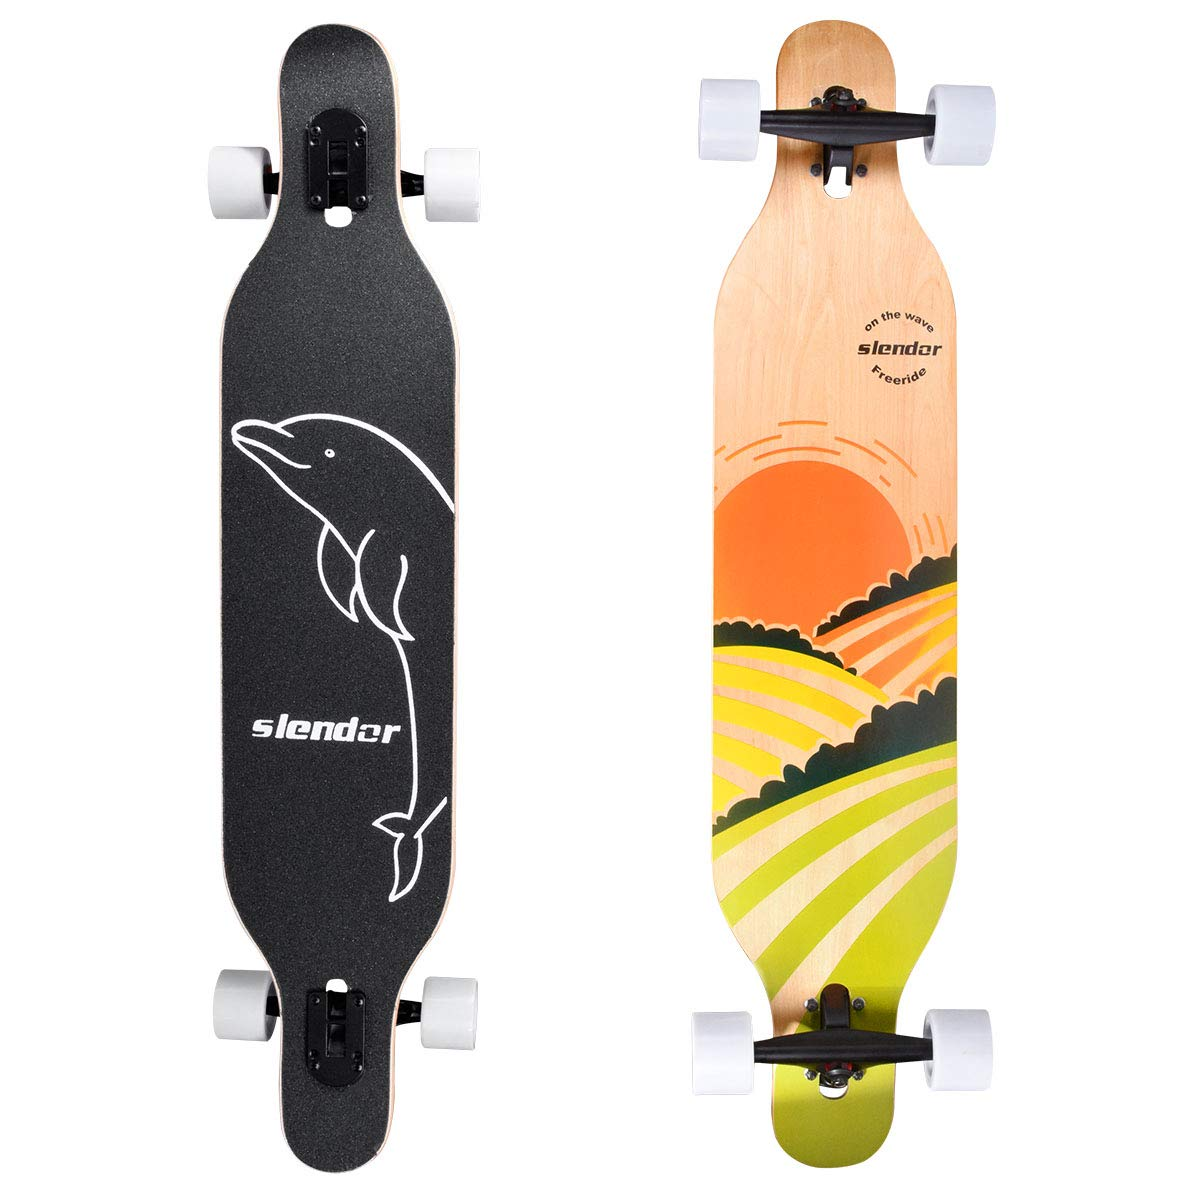 slendor Longboard Skateboard 42 inch Drop Through Deck Complete Maple Cruiser Freestyle, Camber Concave (Sun) by slendor